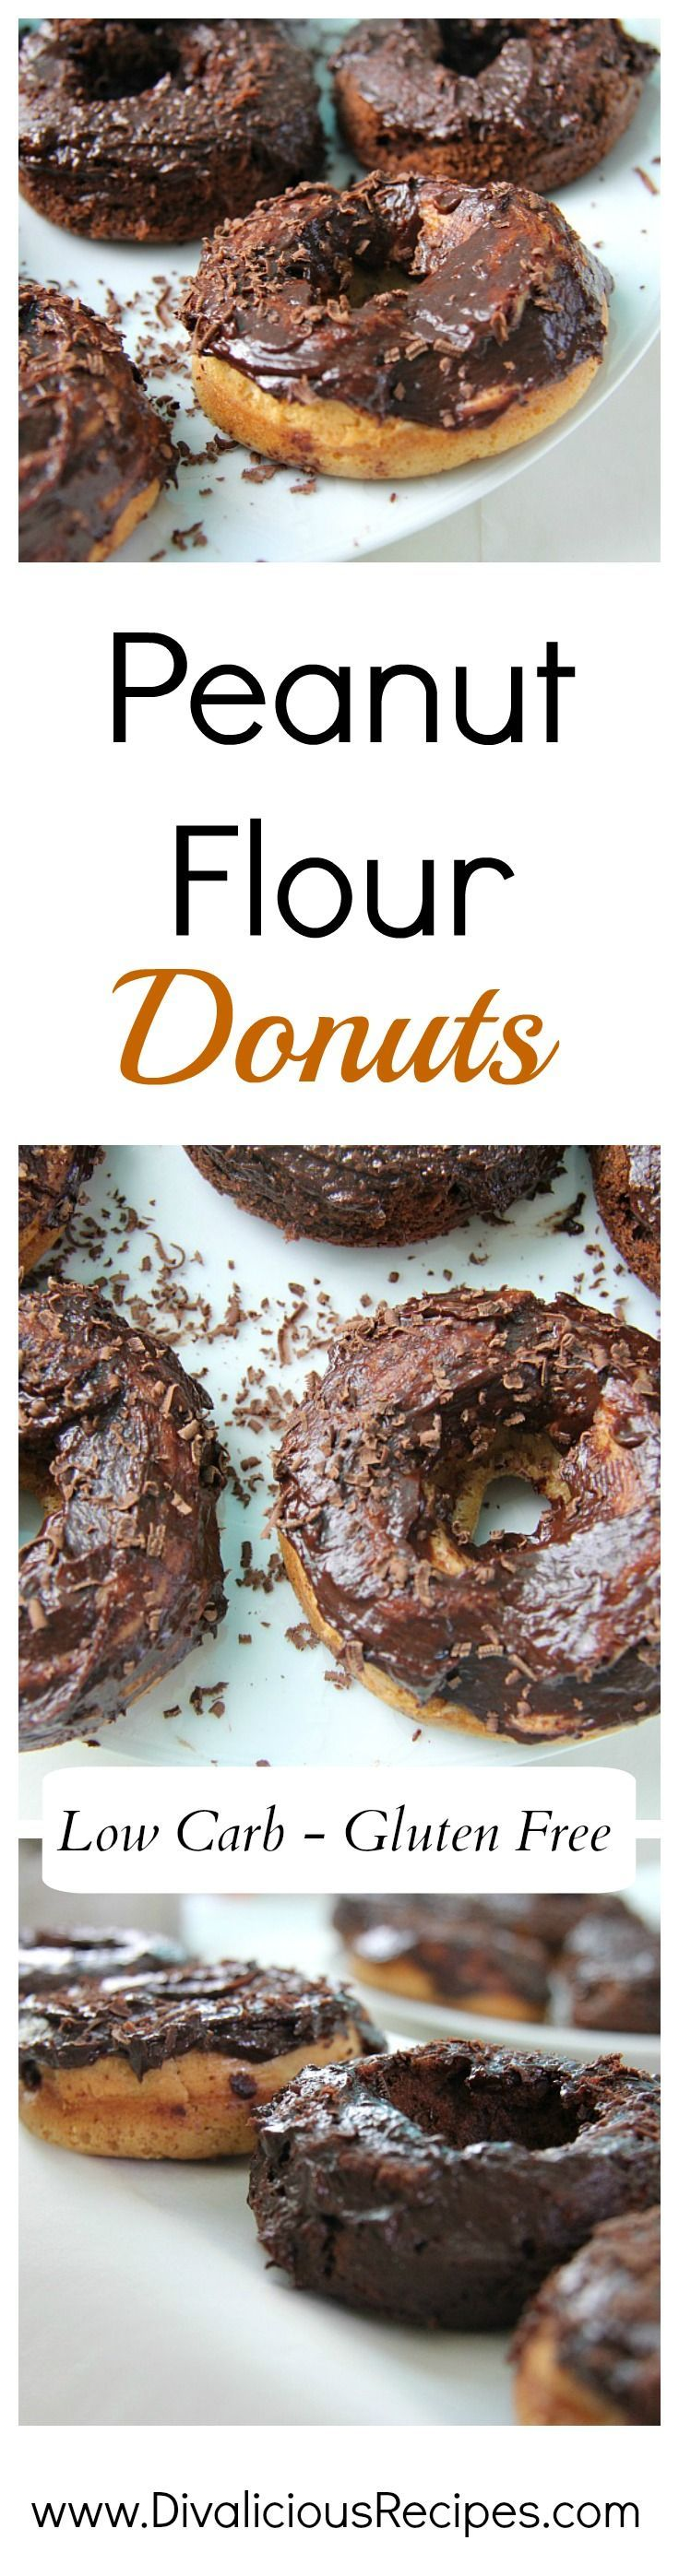 Peanut flour donuts that are baked.  Low carb, grain free and gluten free.